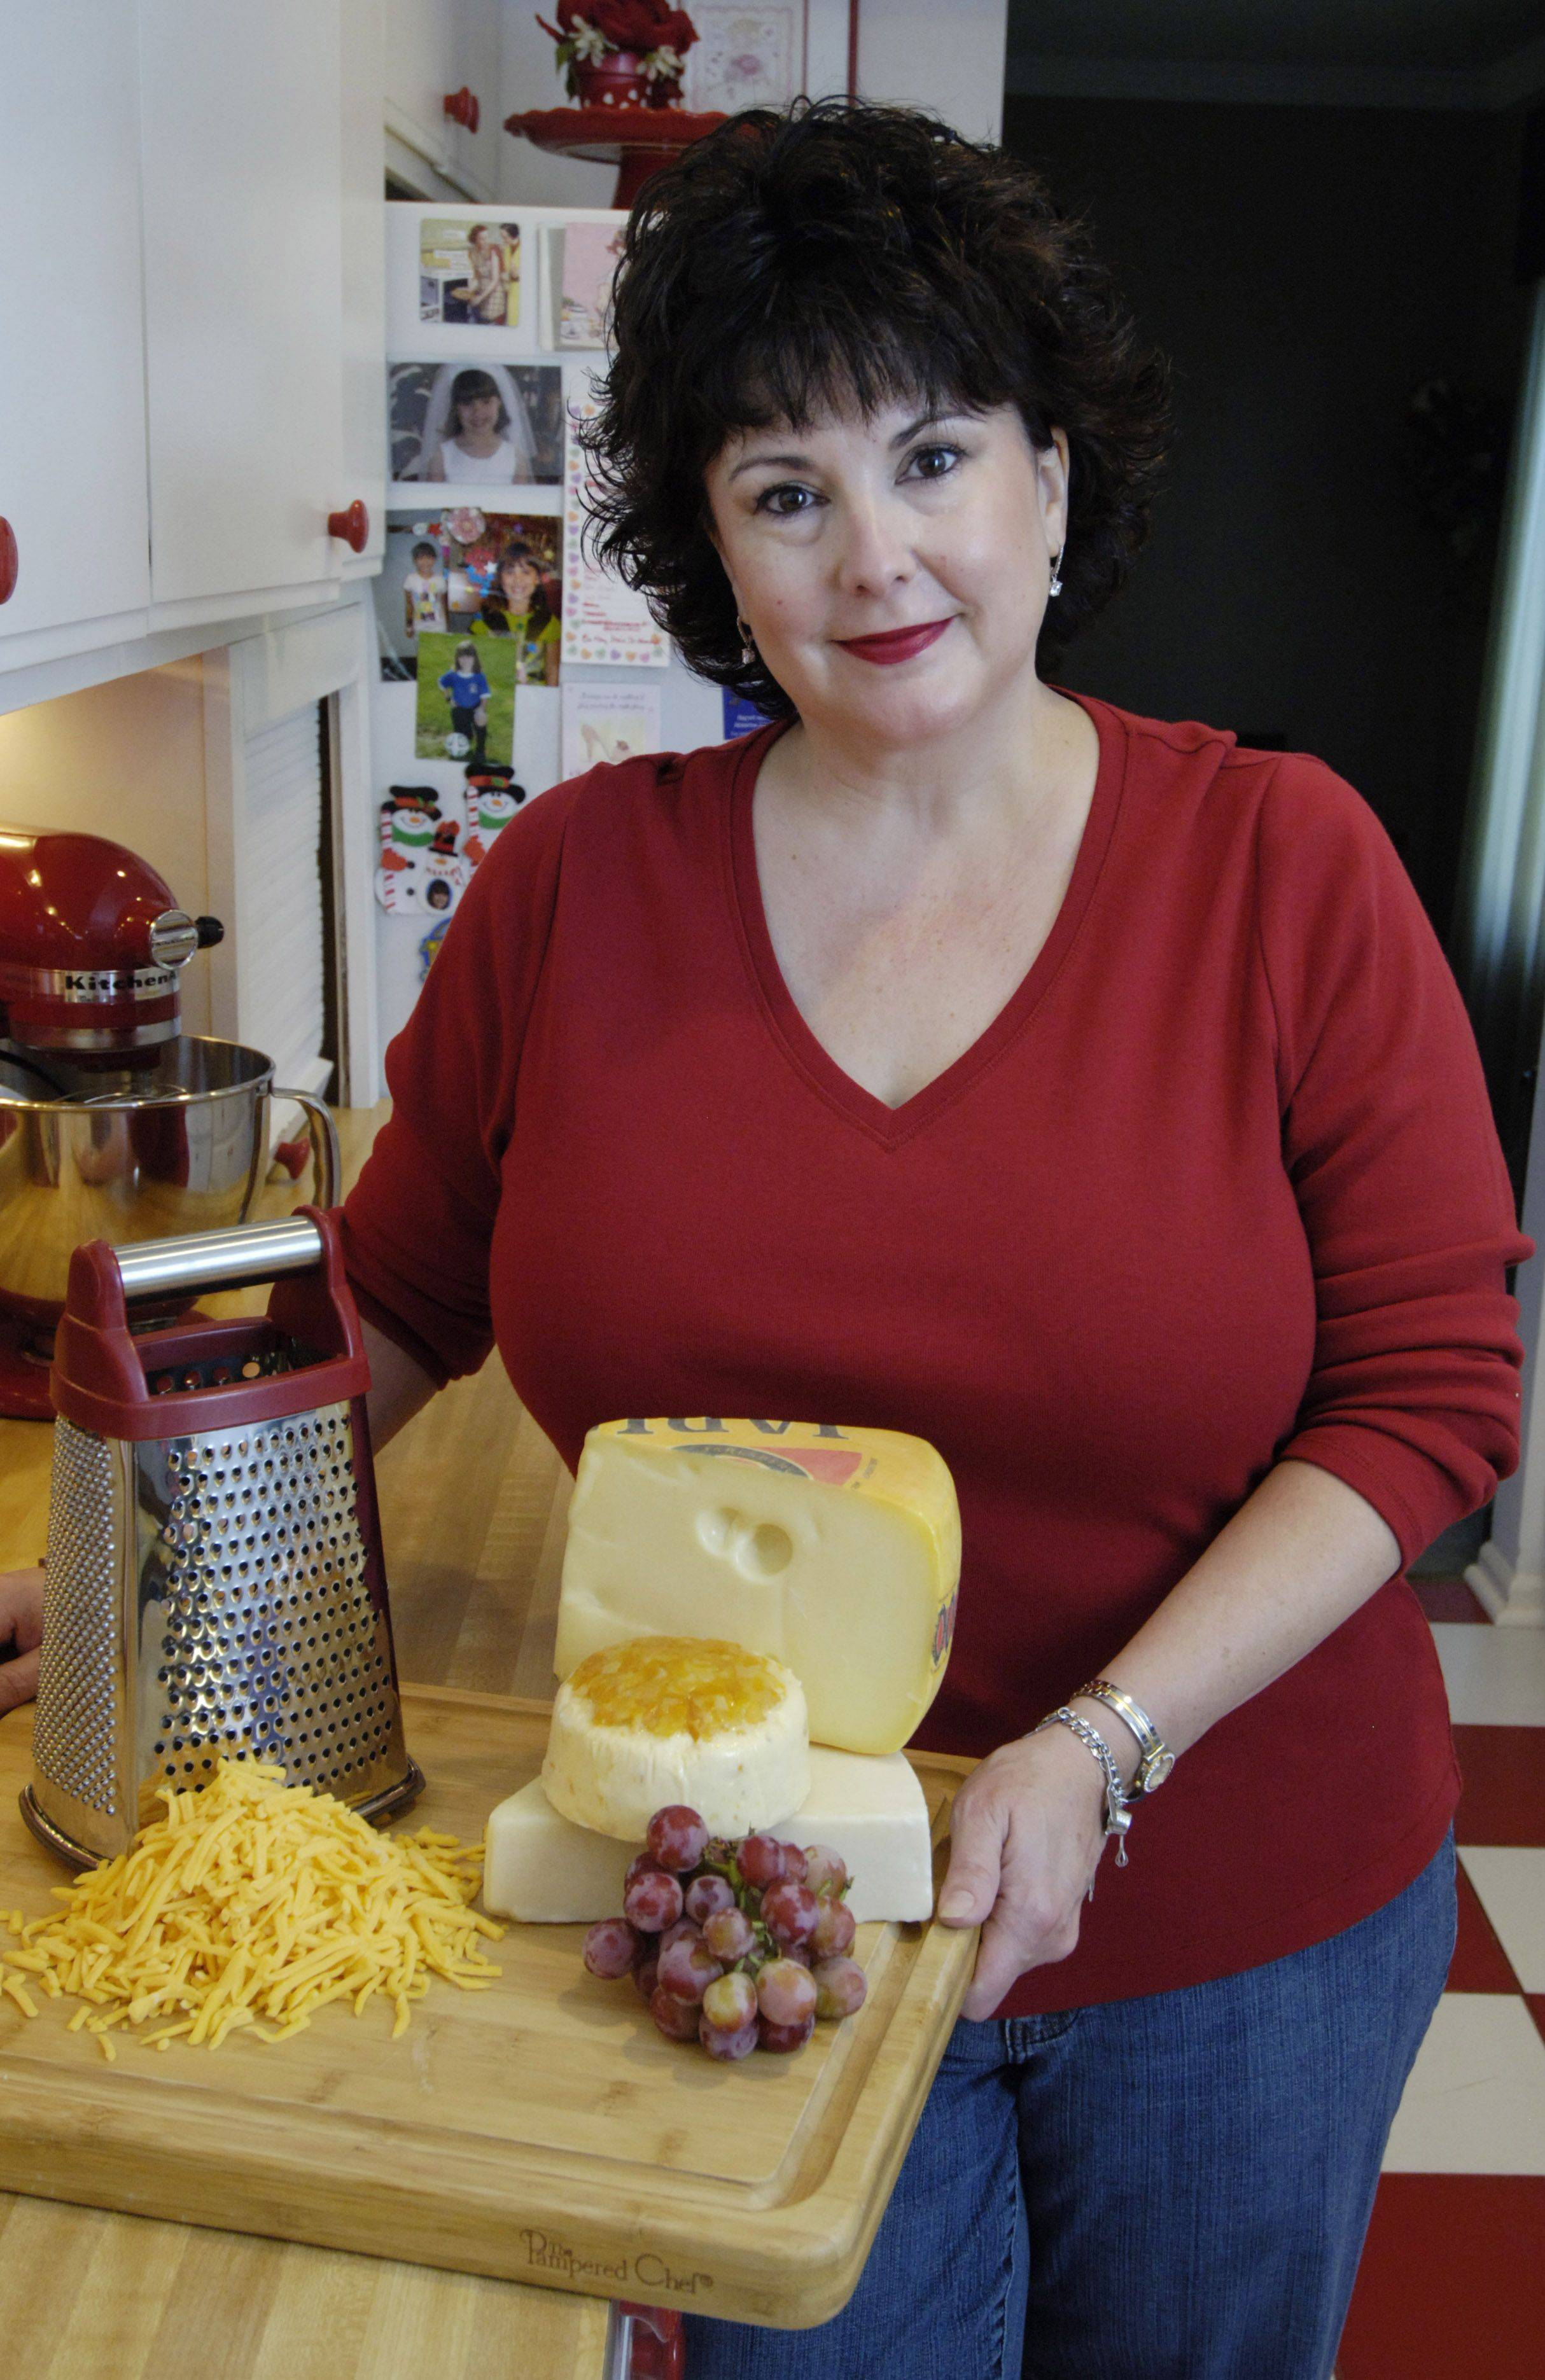 JOE LEWNARD/jlewnard@dailyherald.com Cook of the Week Challenge contestant Mary Beth Riley of Elk Grove Village.